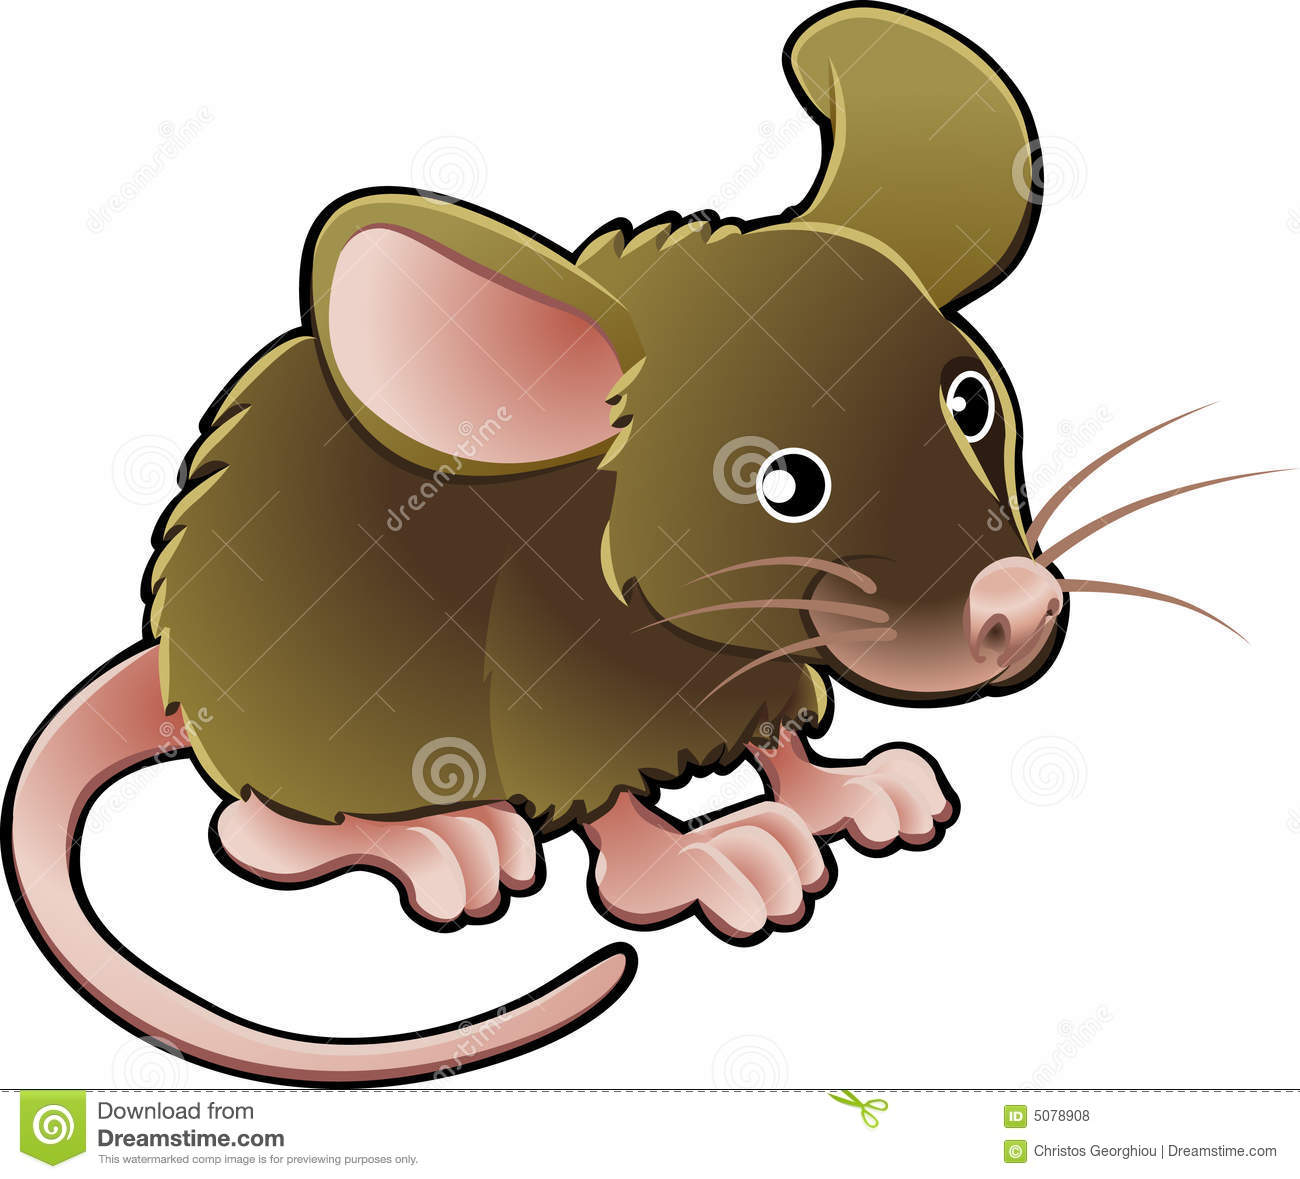 Cute Mouse Vector Illustration Stock Vector - Image: 5078908